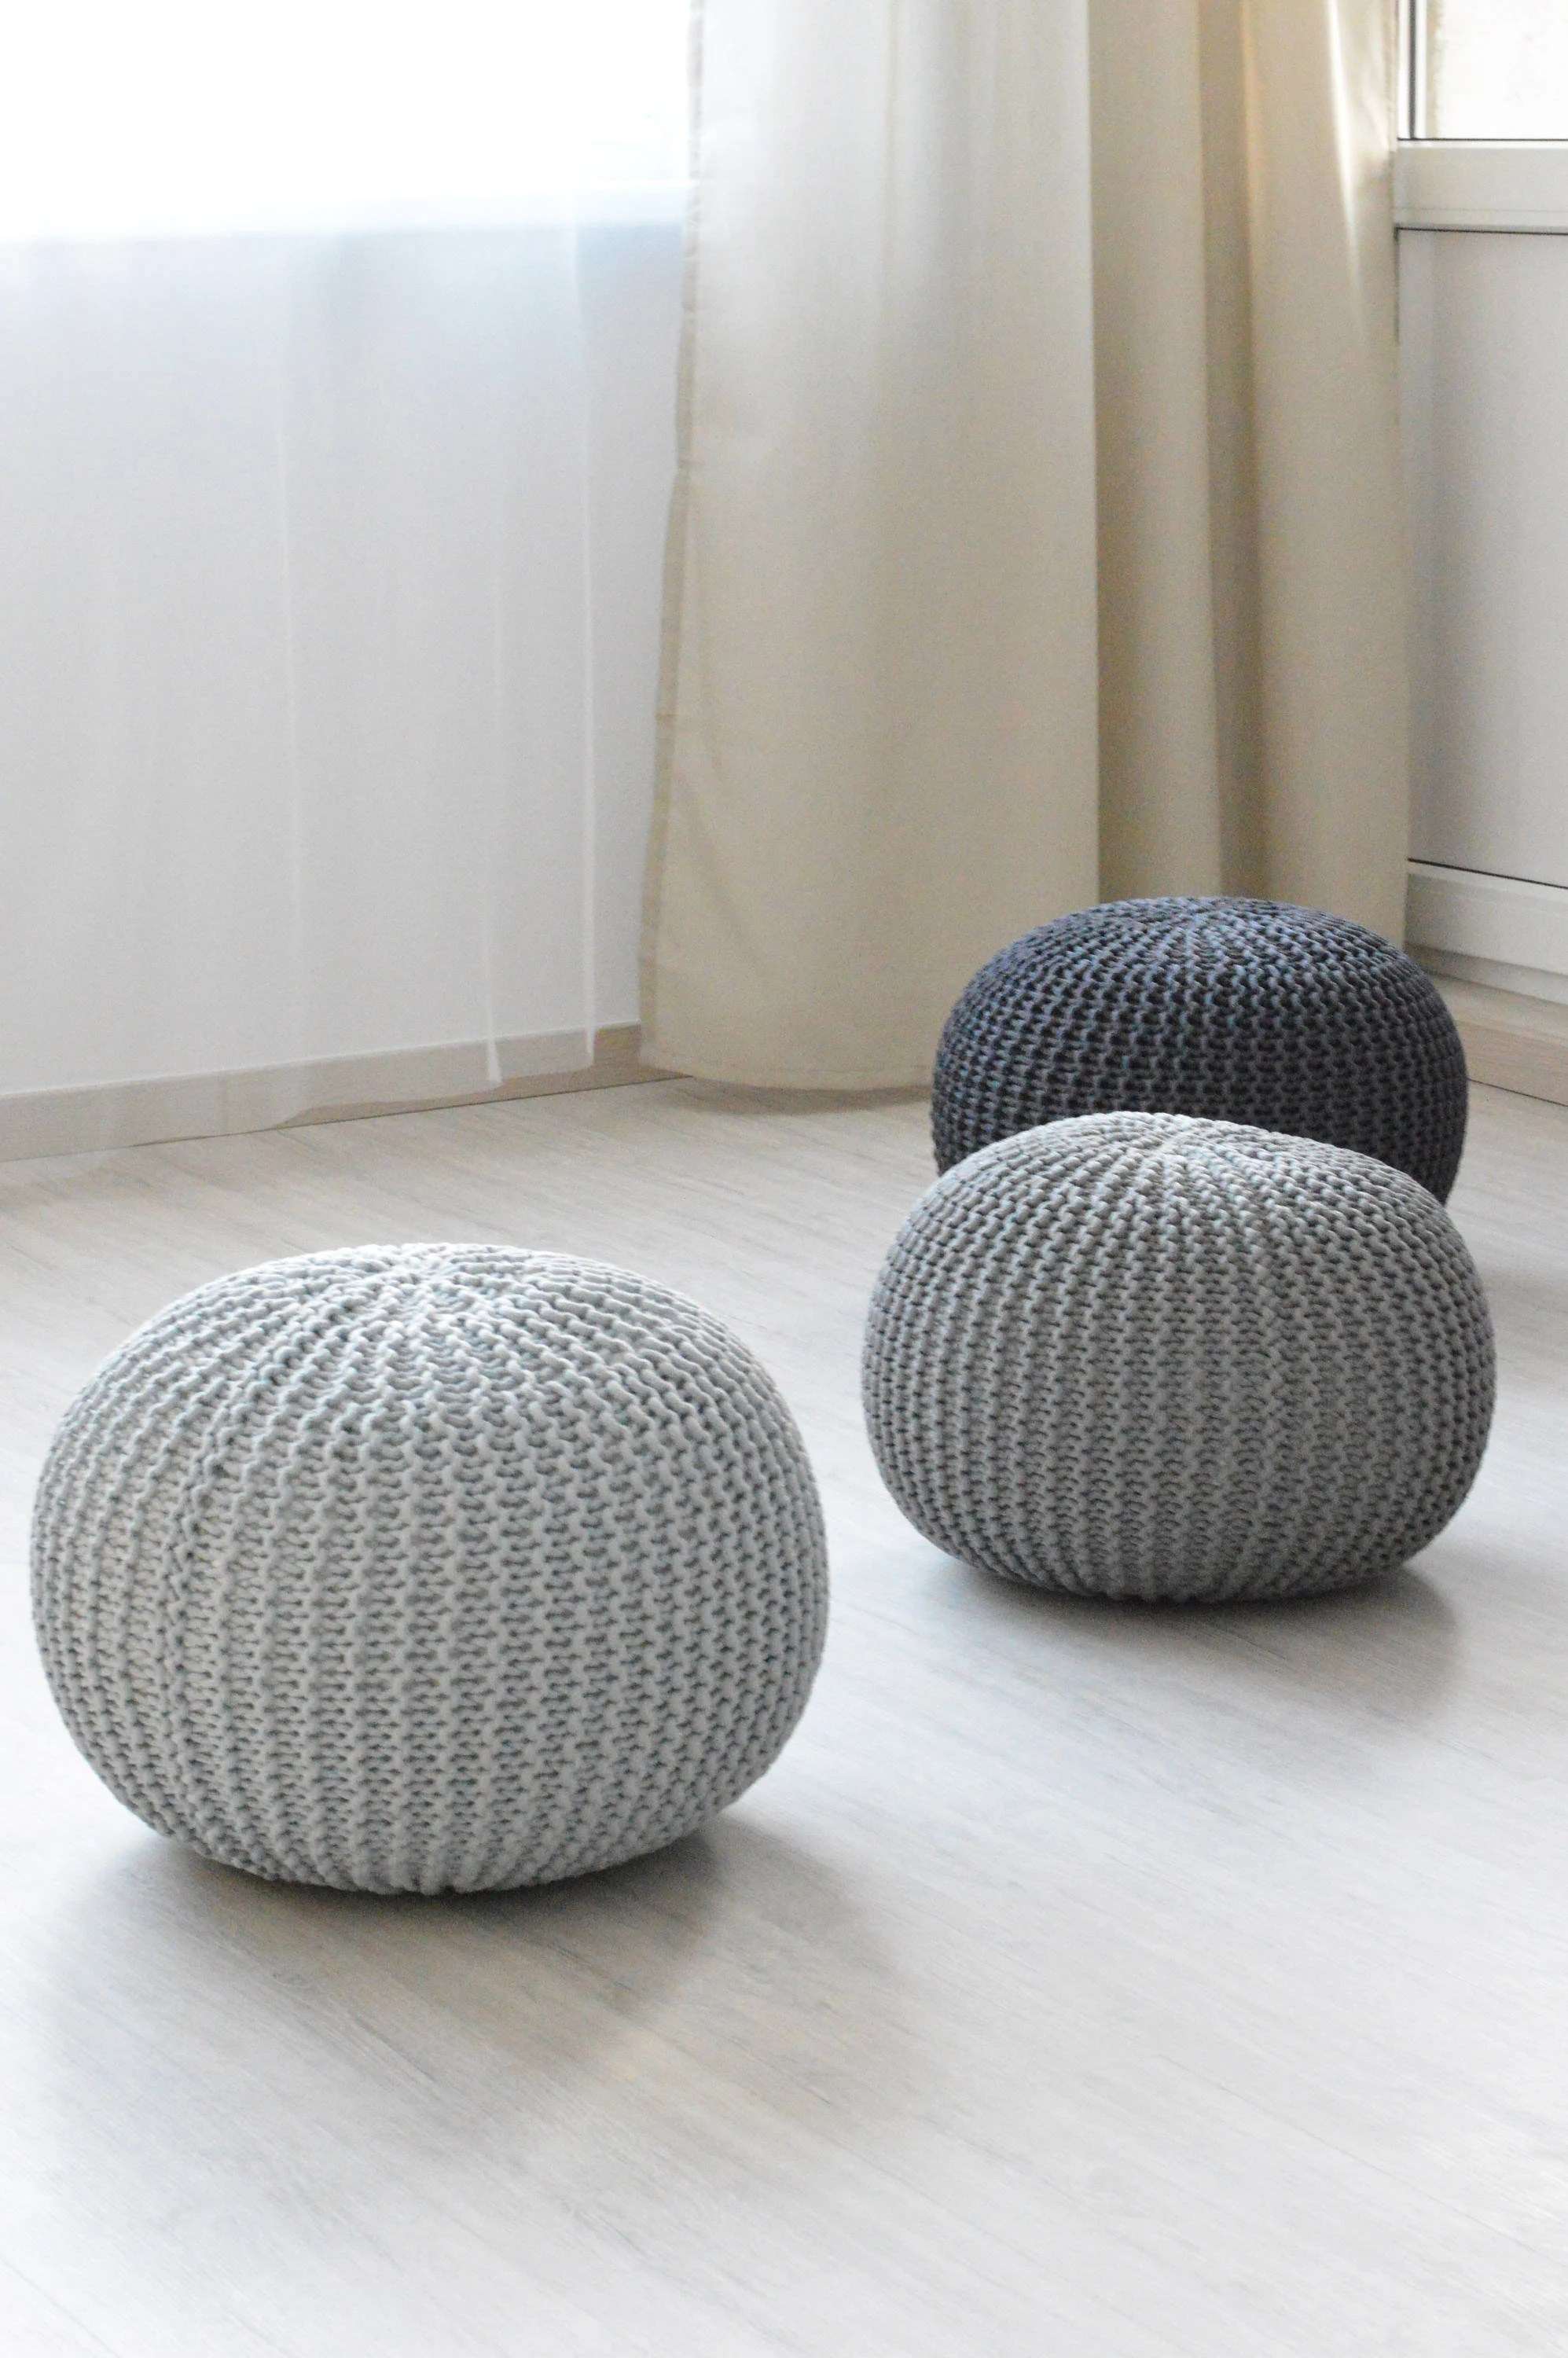 Bean Bag Footstool Knitted Pouf Stuffed Handmade Floor Cushion Bean Bag Hassock Chair Footstool